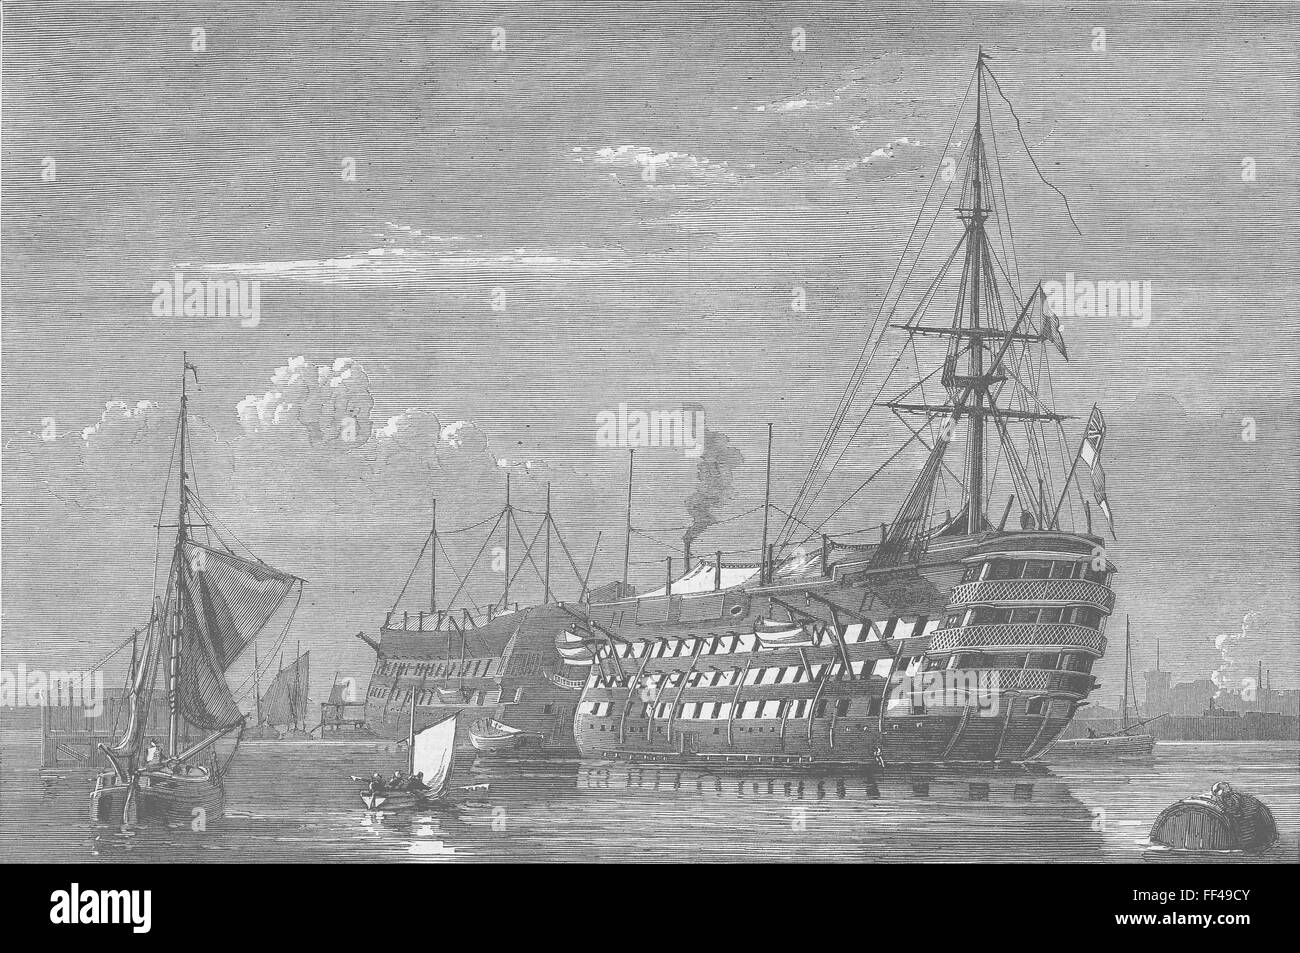 HANTS HMS Excellent, Gunnery Ship, Portsmouth 1873. Illustrated London News - Stock Image